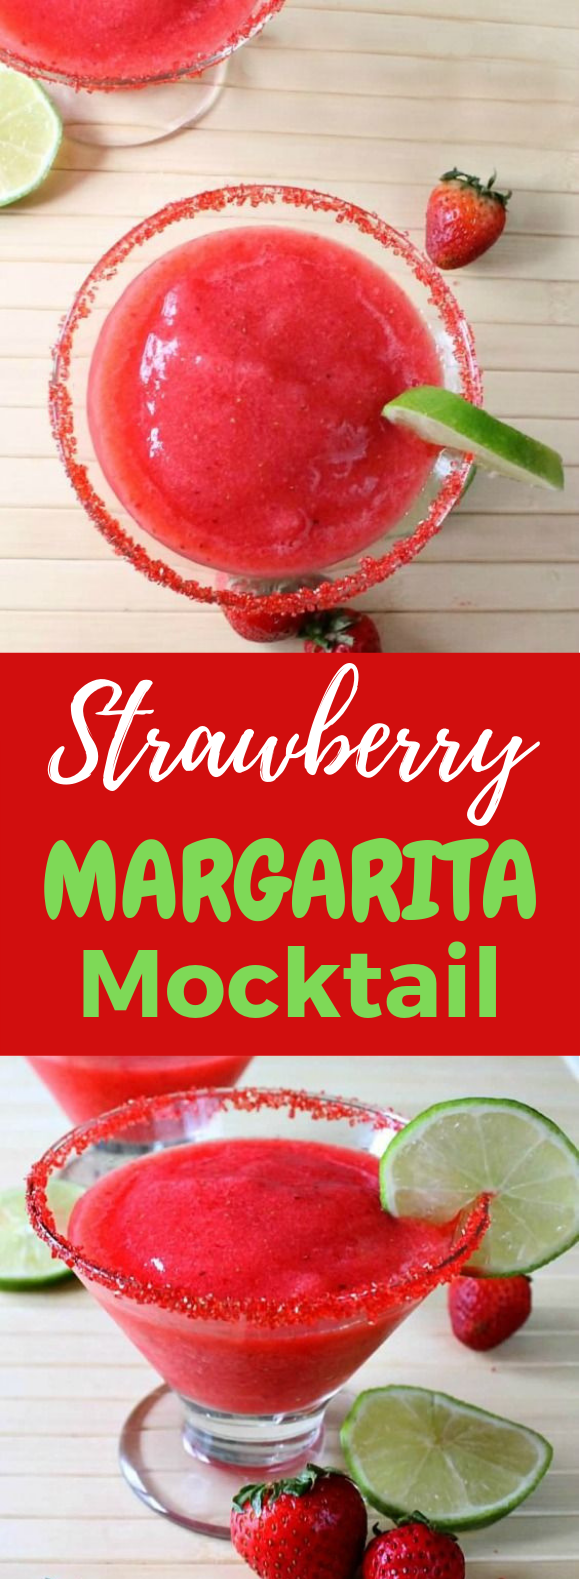 STRAWBERRY MARGARITA MOCKTAIL #Mocktail #Drink